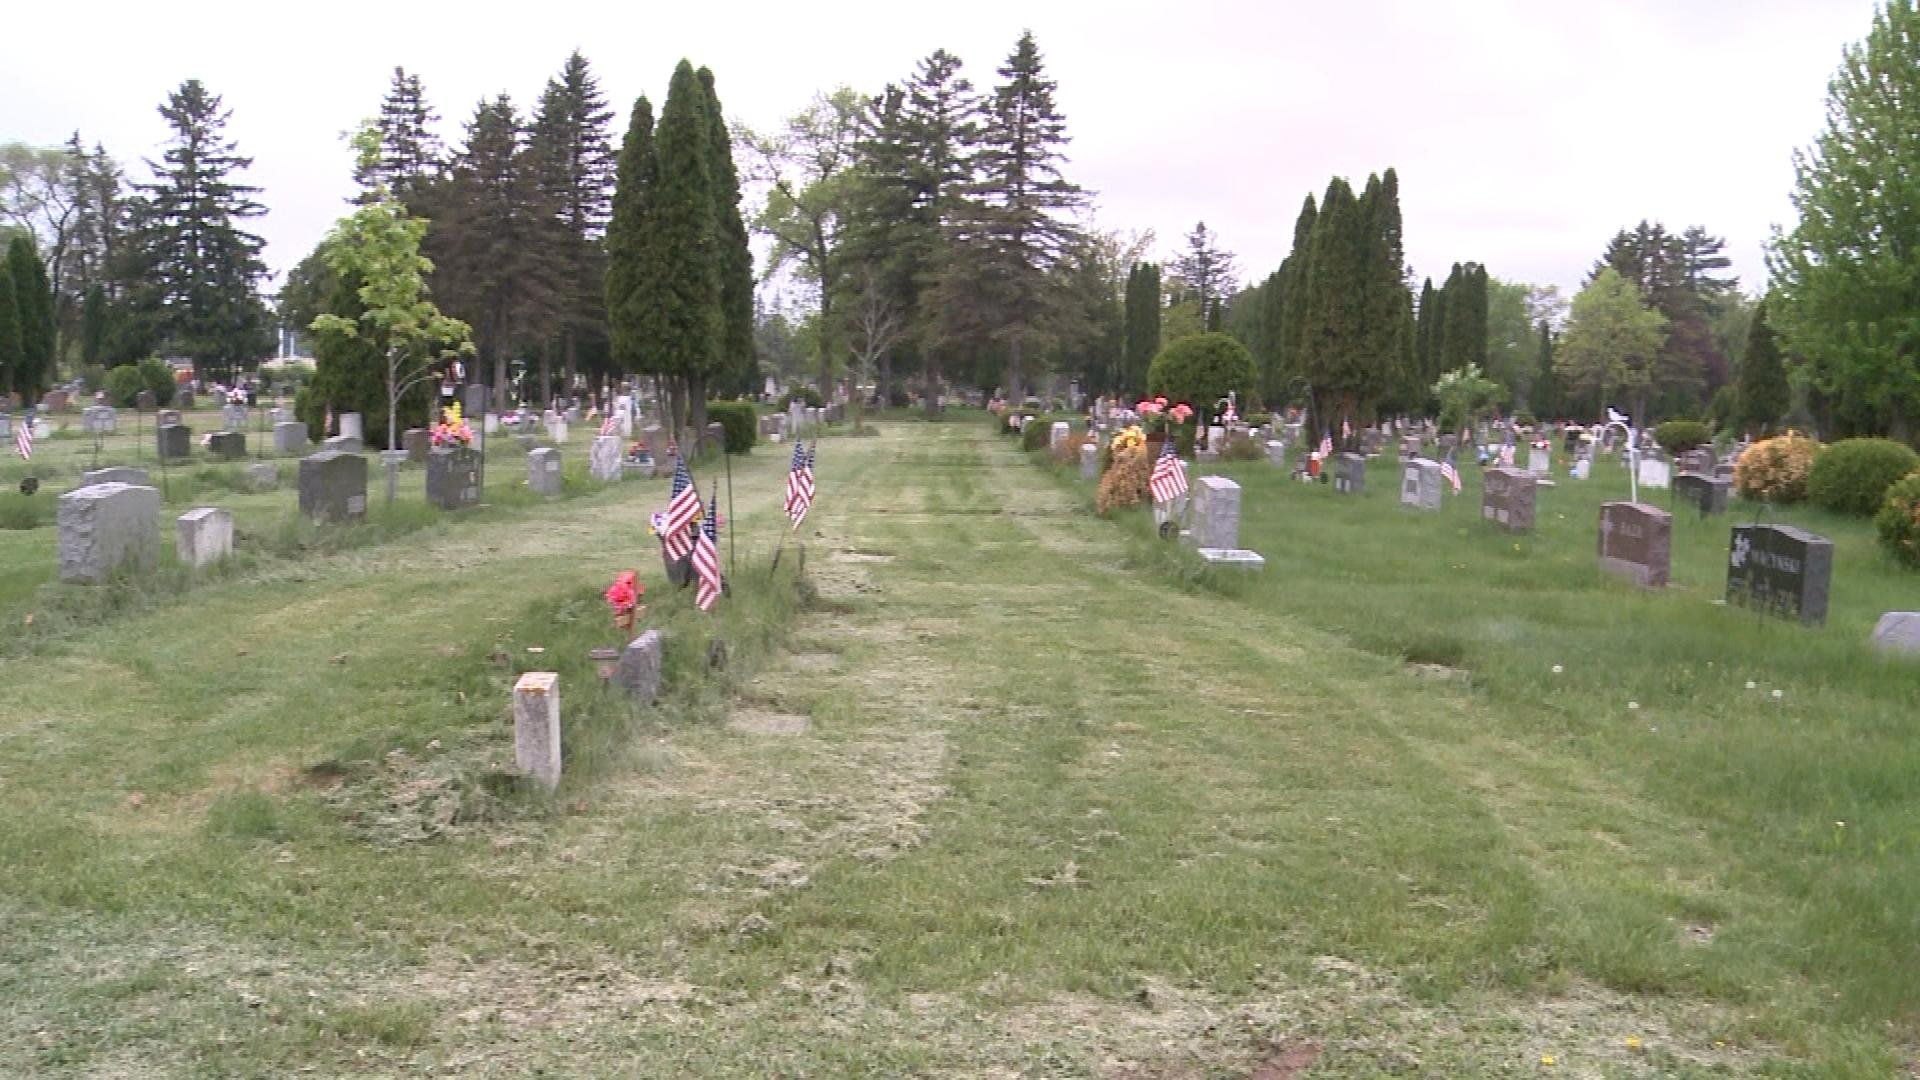 former cemetery employee thinks money problems led to poor